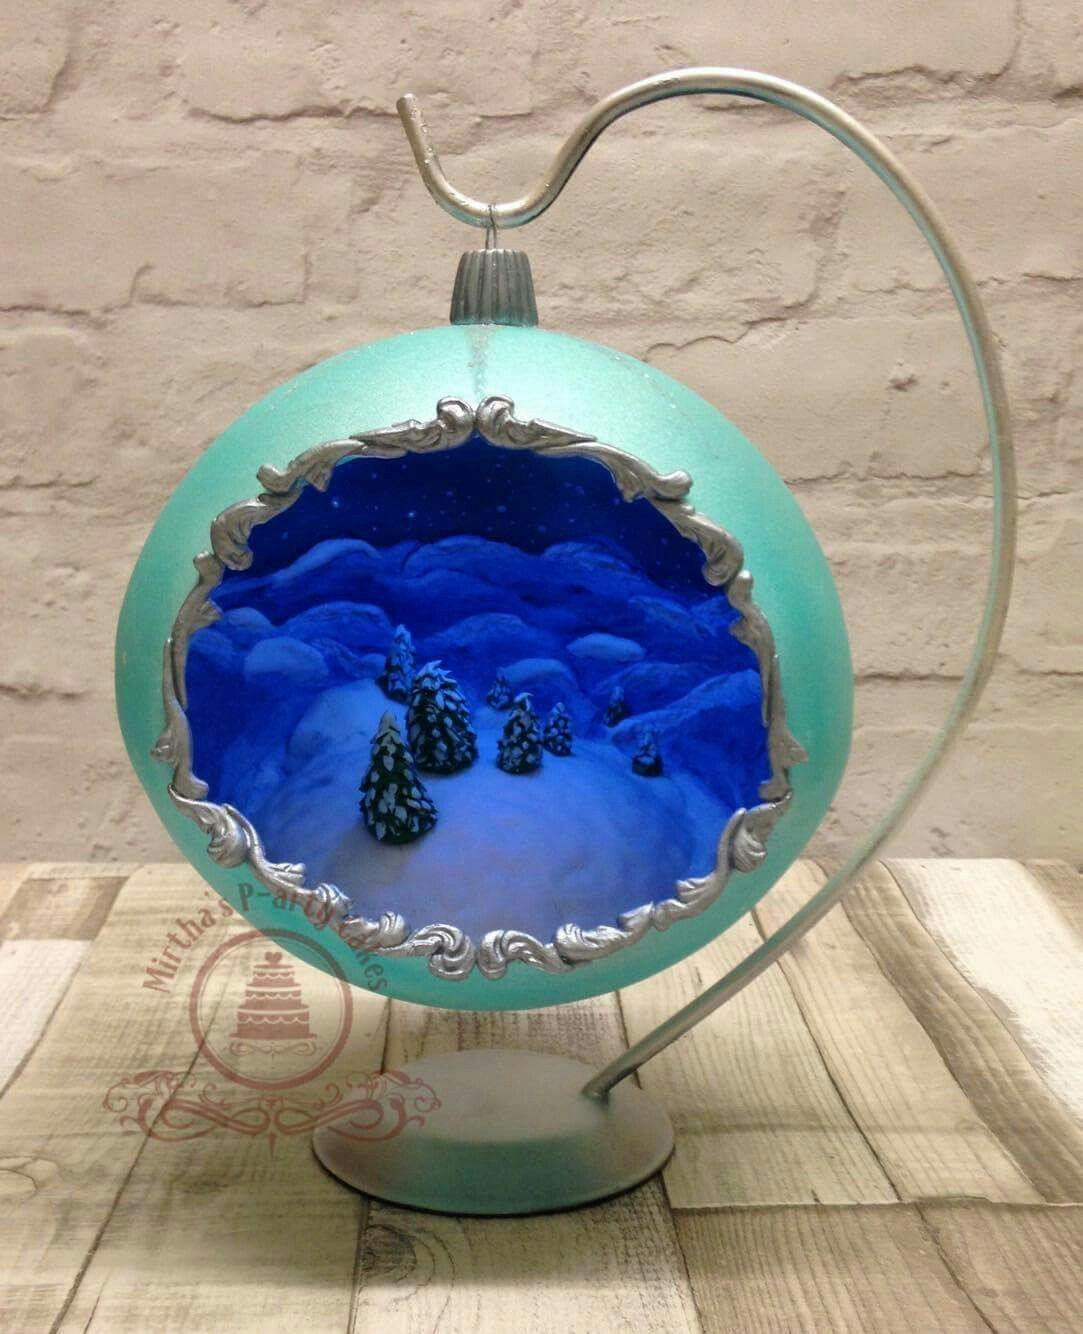 Day 11 - Christmas Ornament